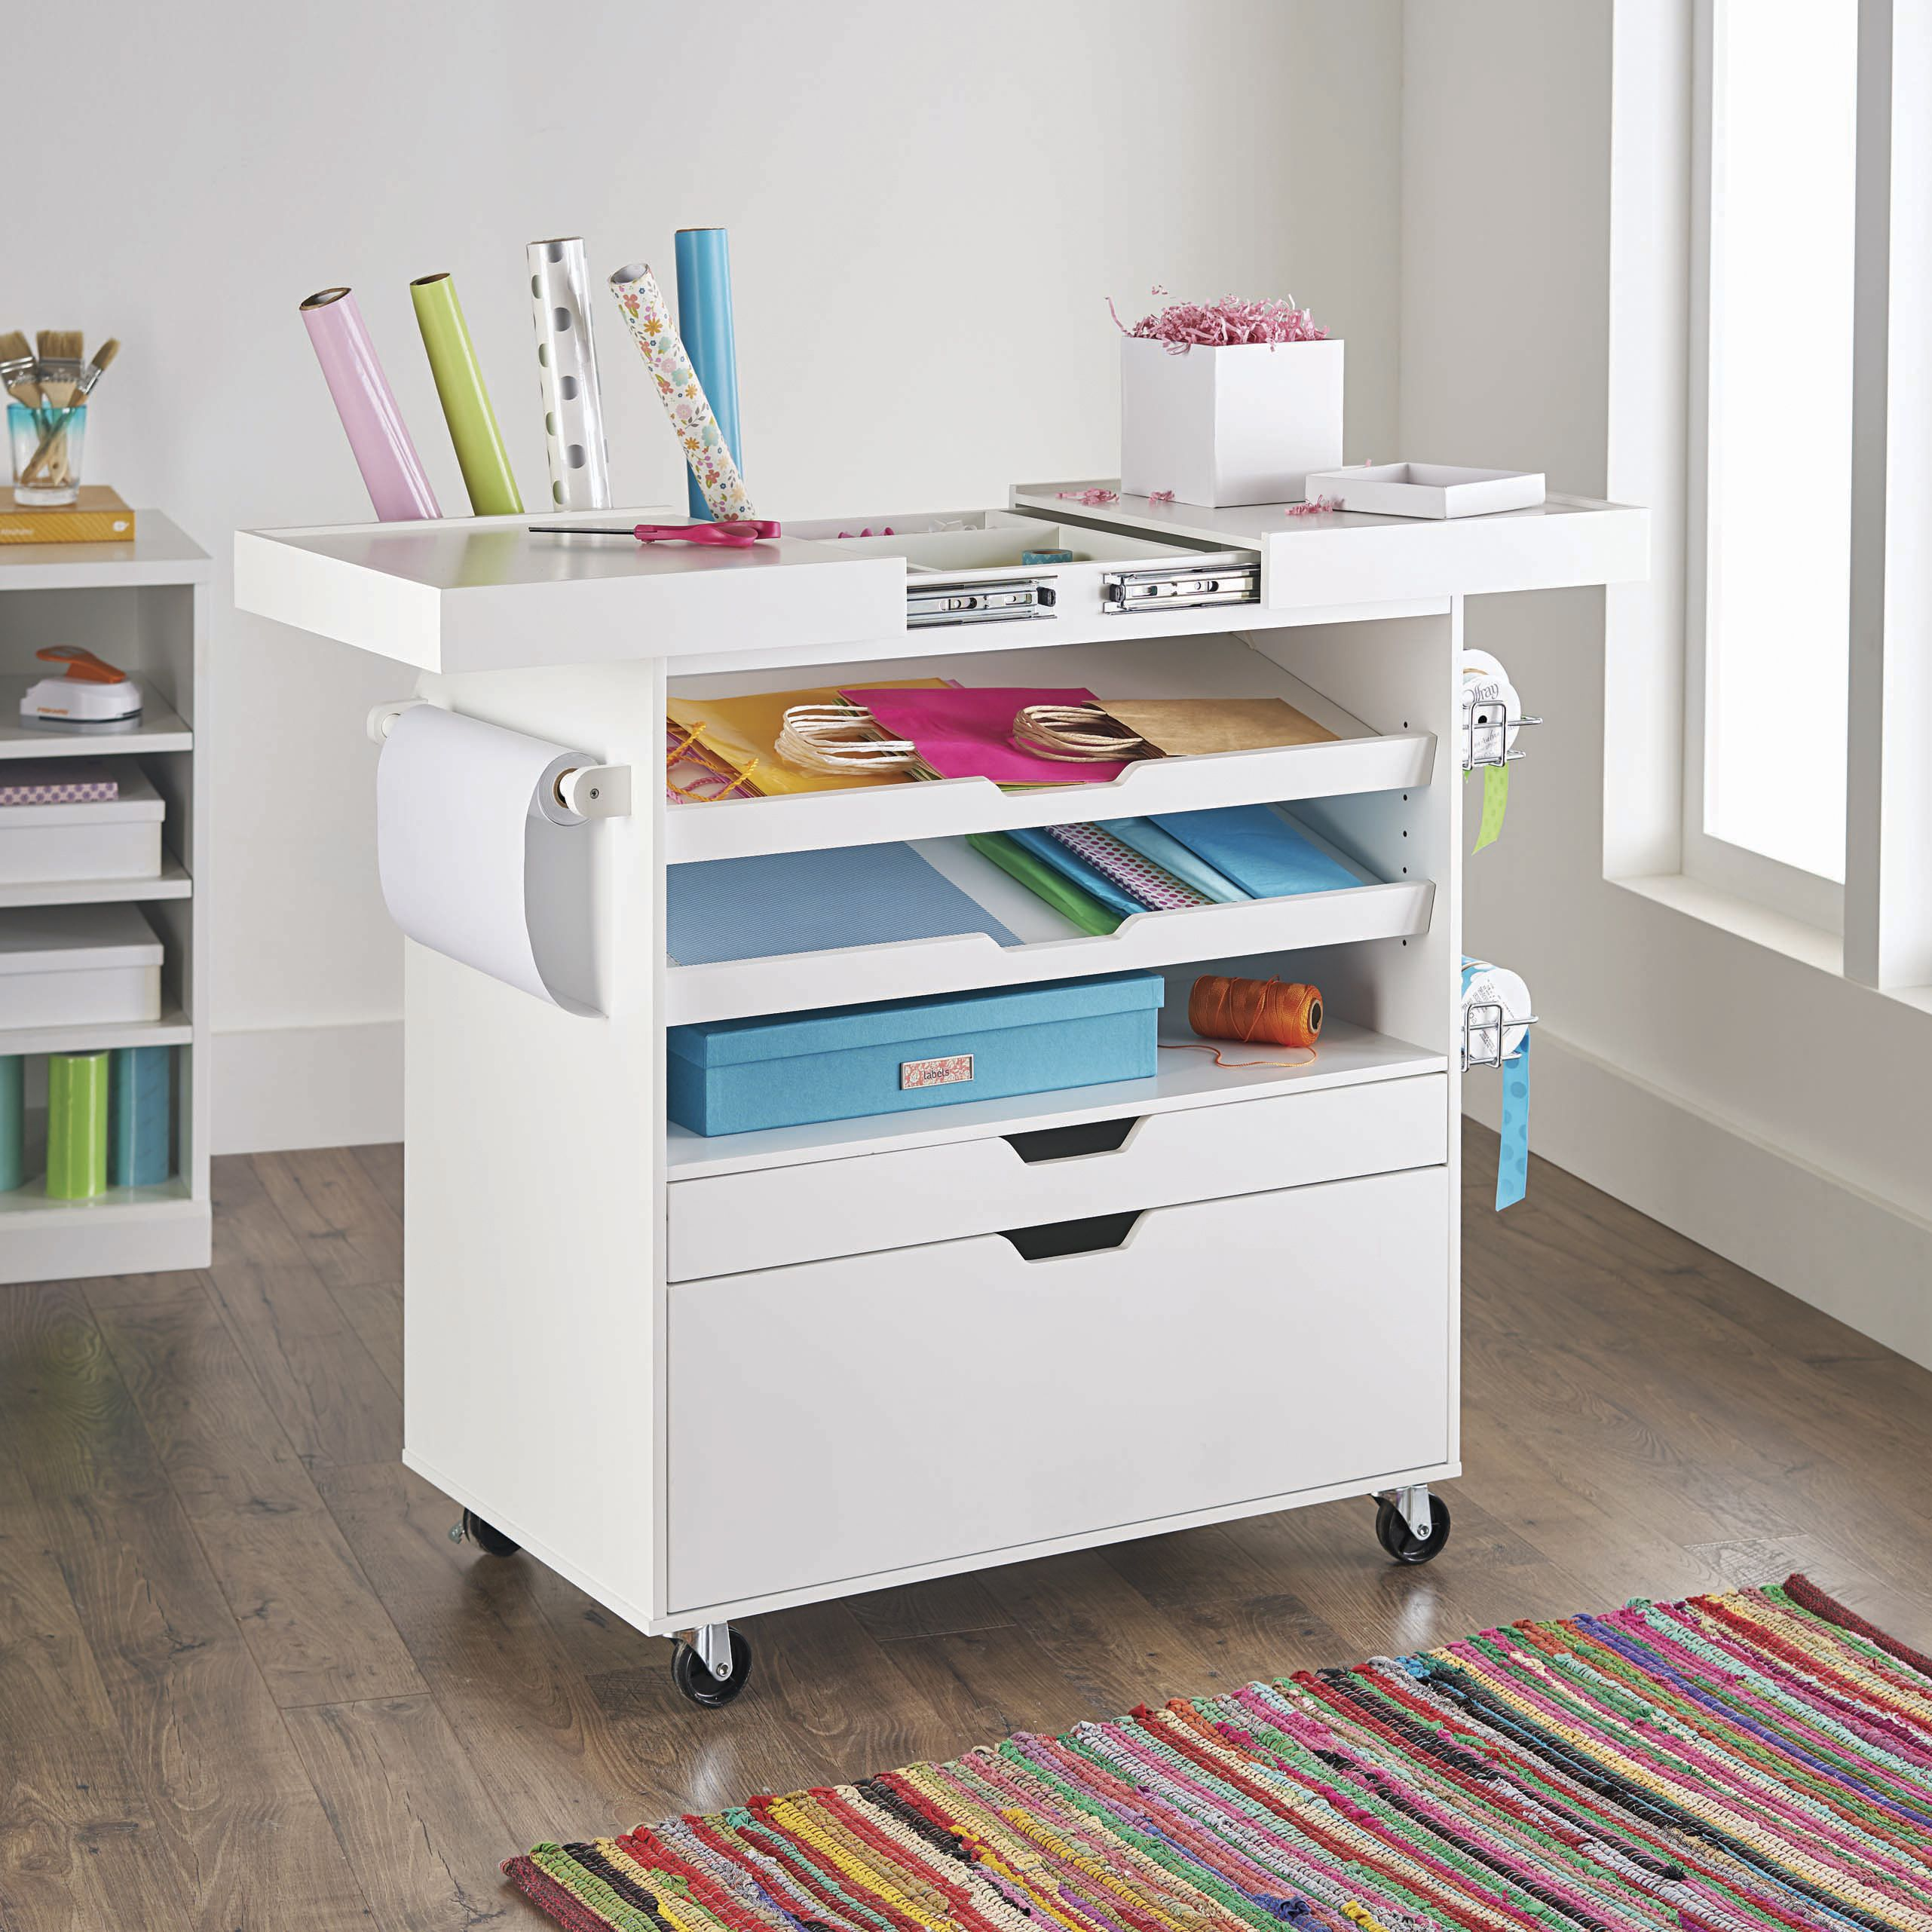 Free 2 Day Shipping Buy Better Homes Gardens Craftform Sewing And Craft Cart White Finish At Walmart Com In 2020 Craft Cart Craft Table Dream Craft Room